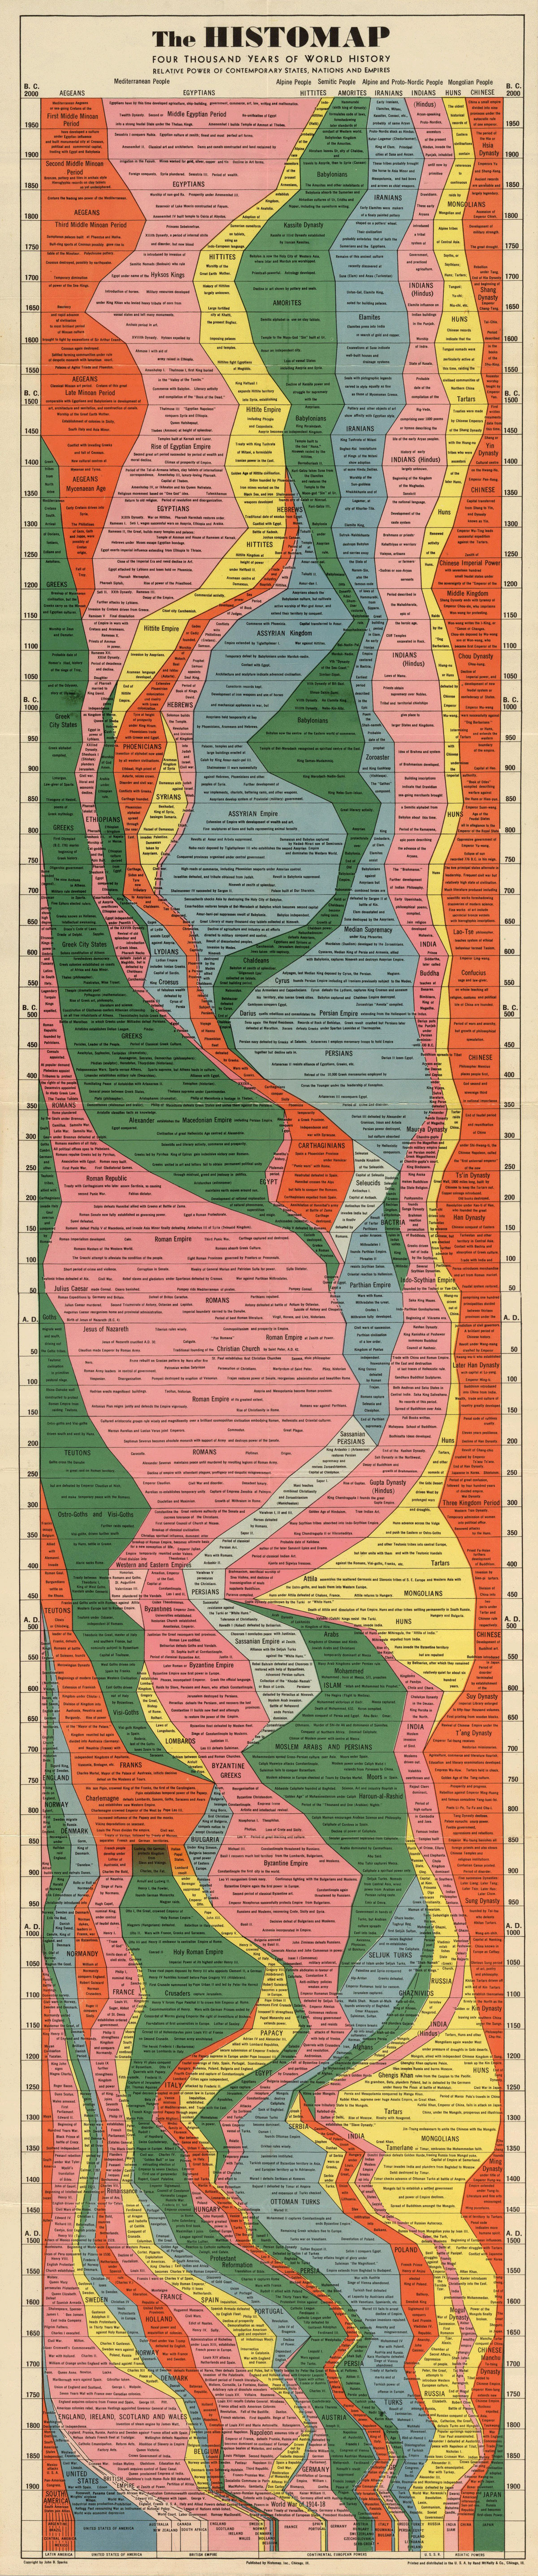 4000 years of world history in one epic chart1 4,000 Years of World History in One Epic Chart